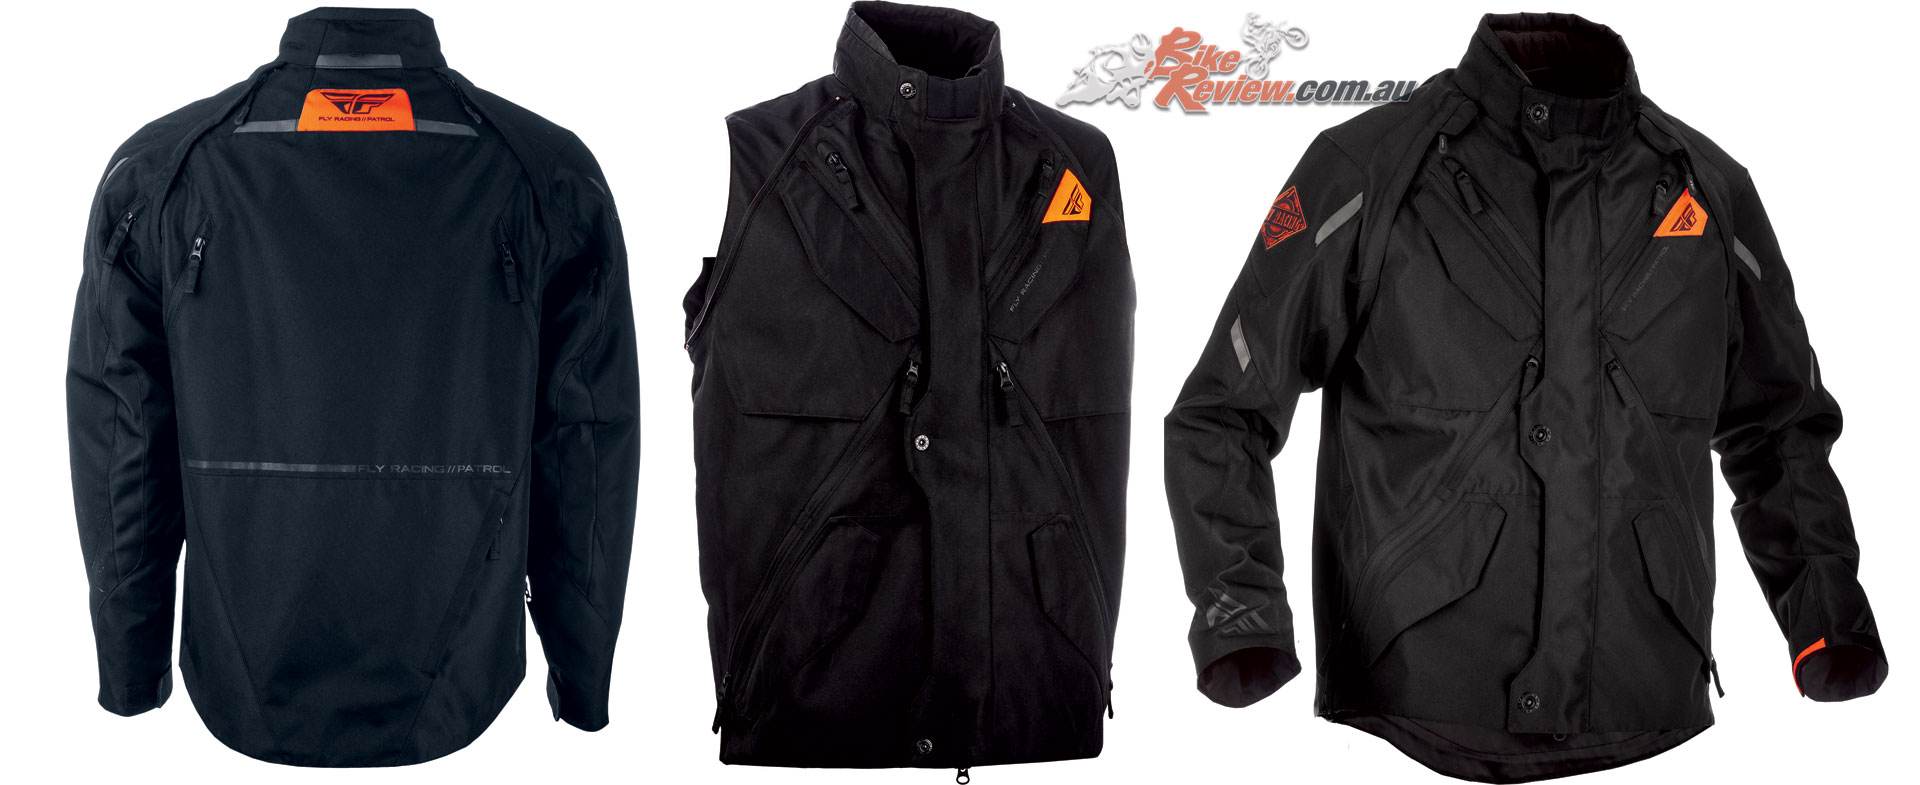 Fly Racing Patrol Jacket - $249.95 RRP